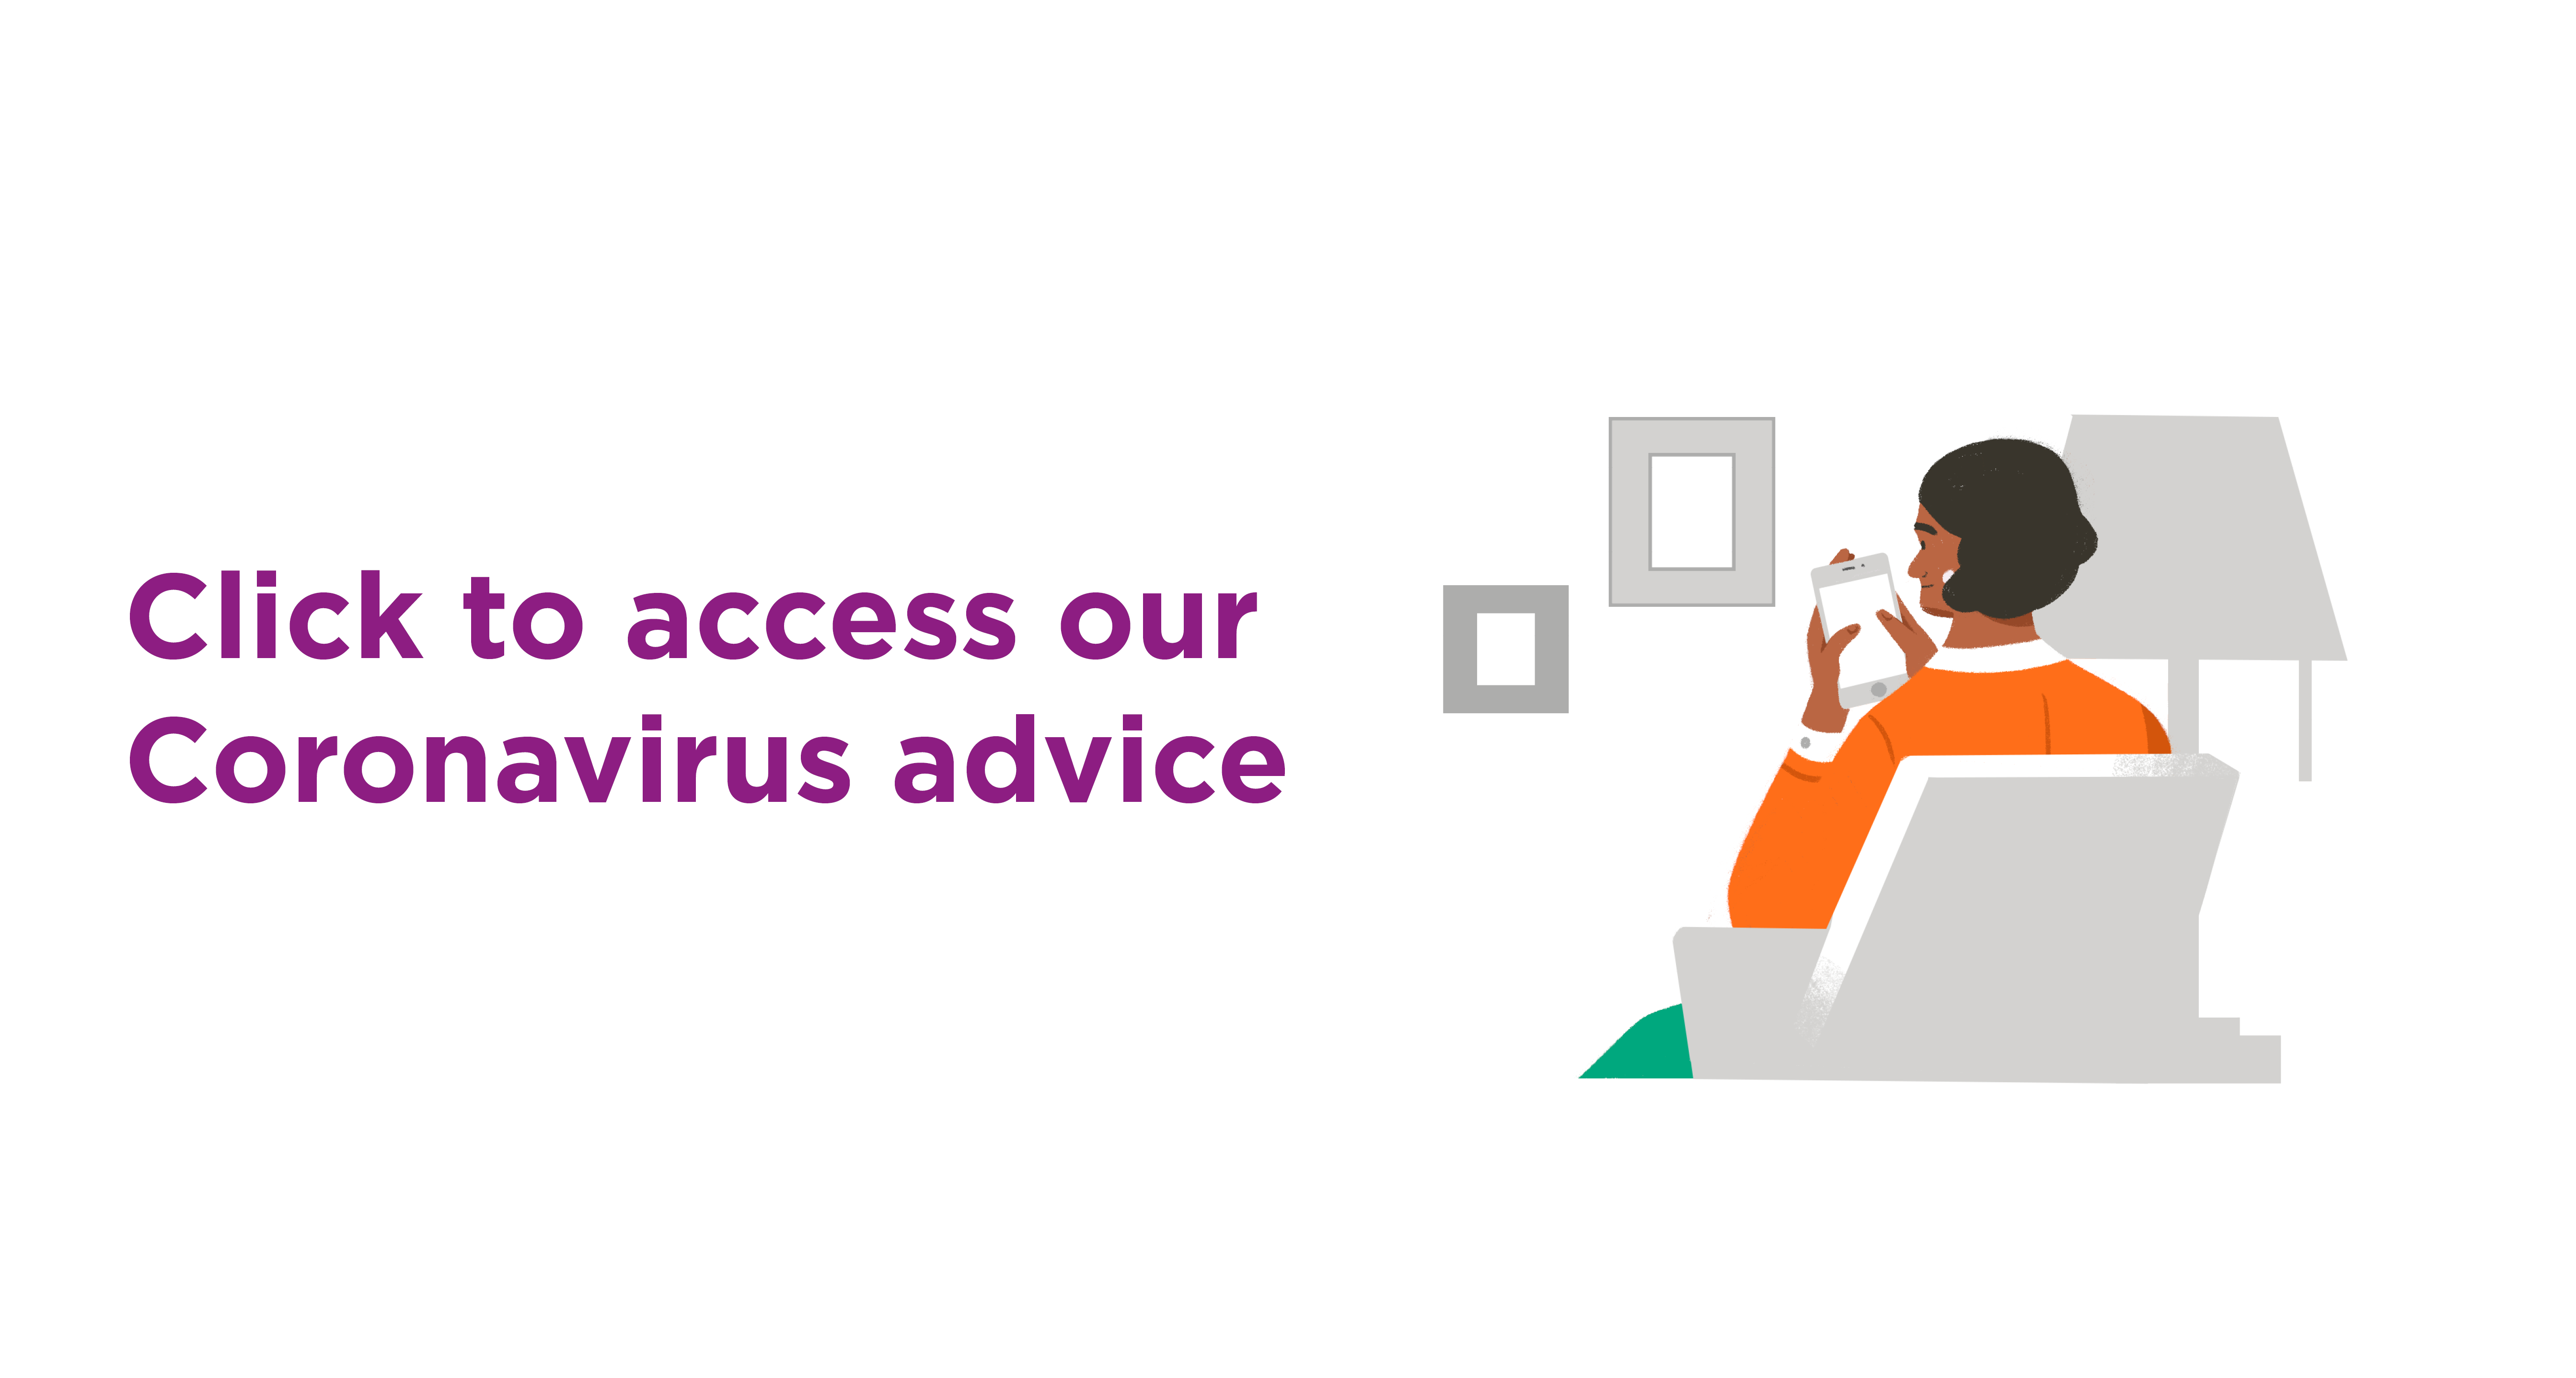 Click to access our Coronavirus advice